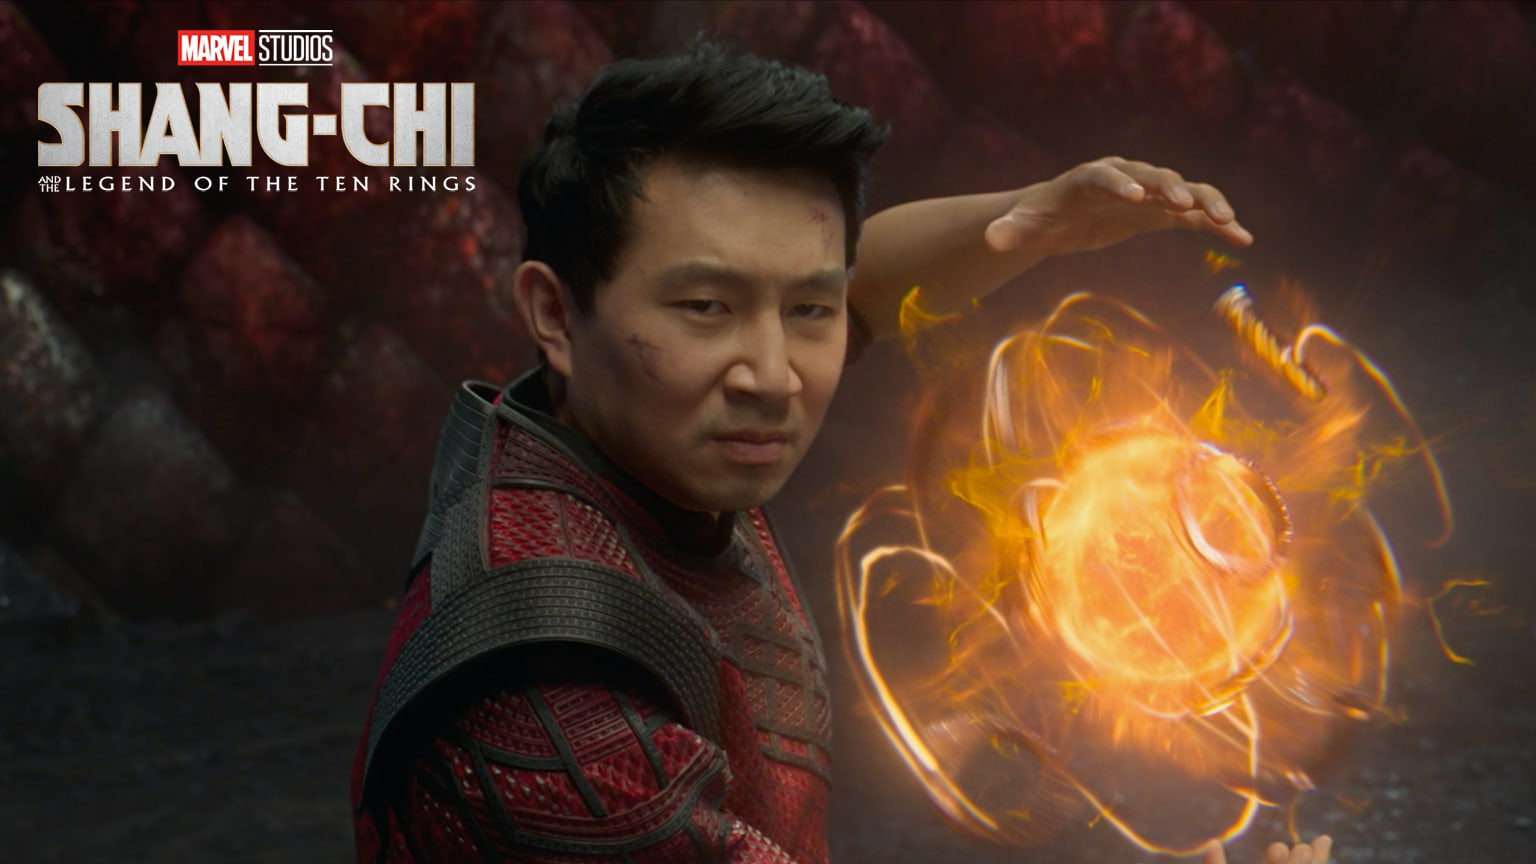 Tribute   Marvel Studios' Shang-Chi and The Legend of The Ten Rings